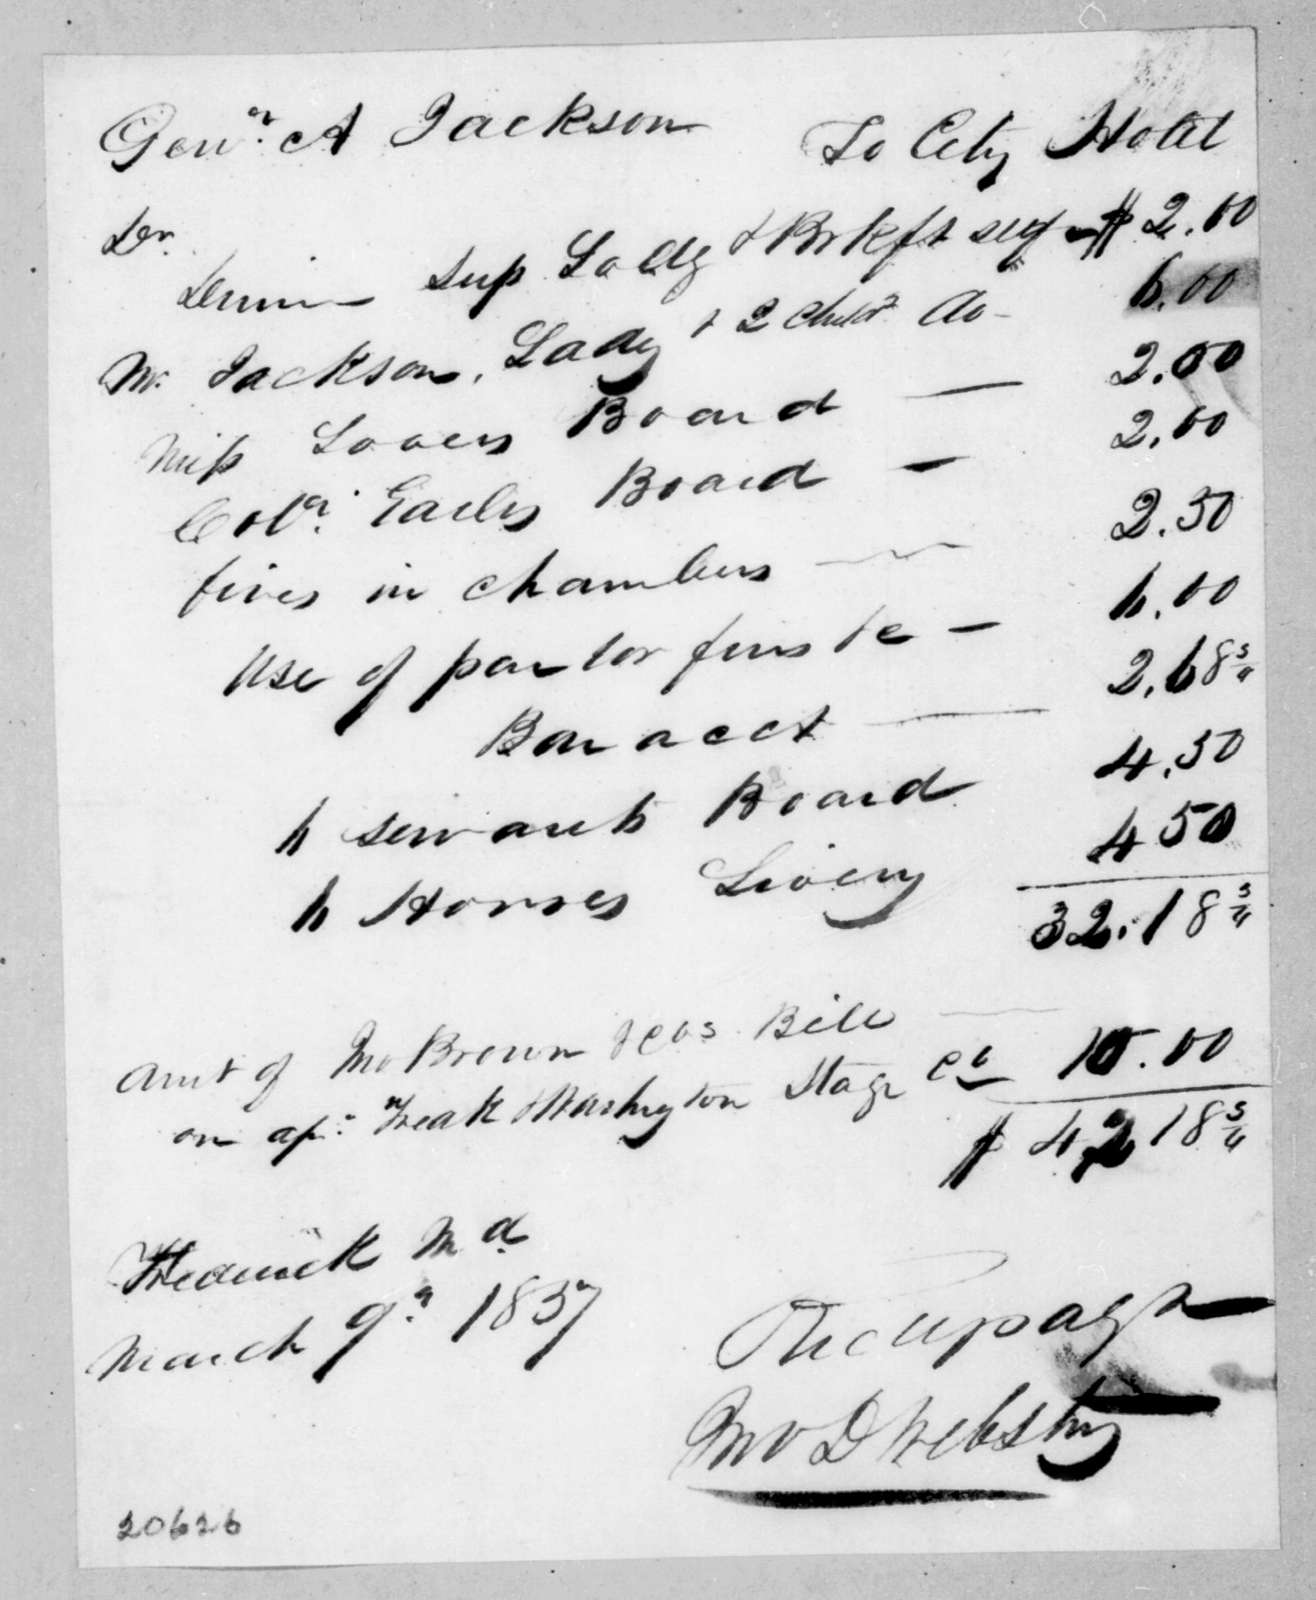 Frederick Maryland City Hotel to Andrew Jackson, March 9, 1837